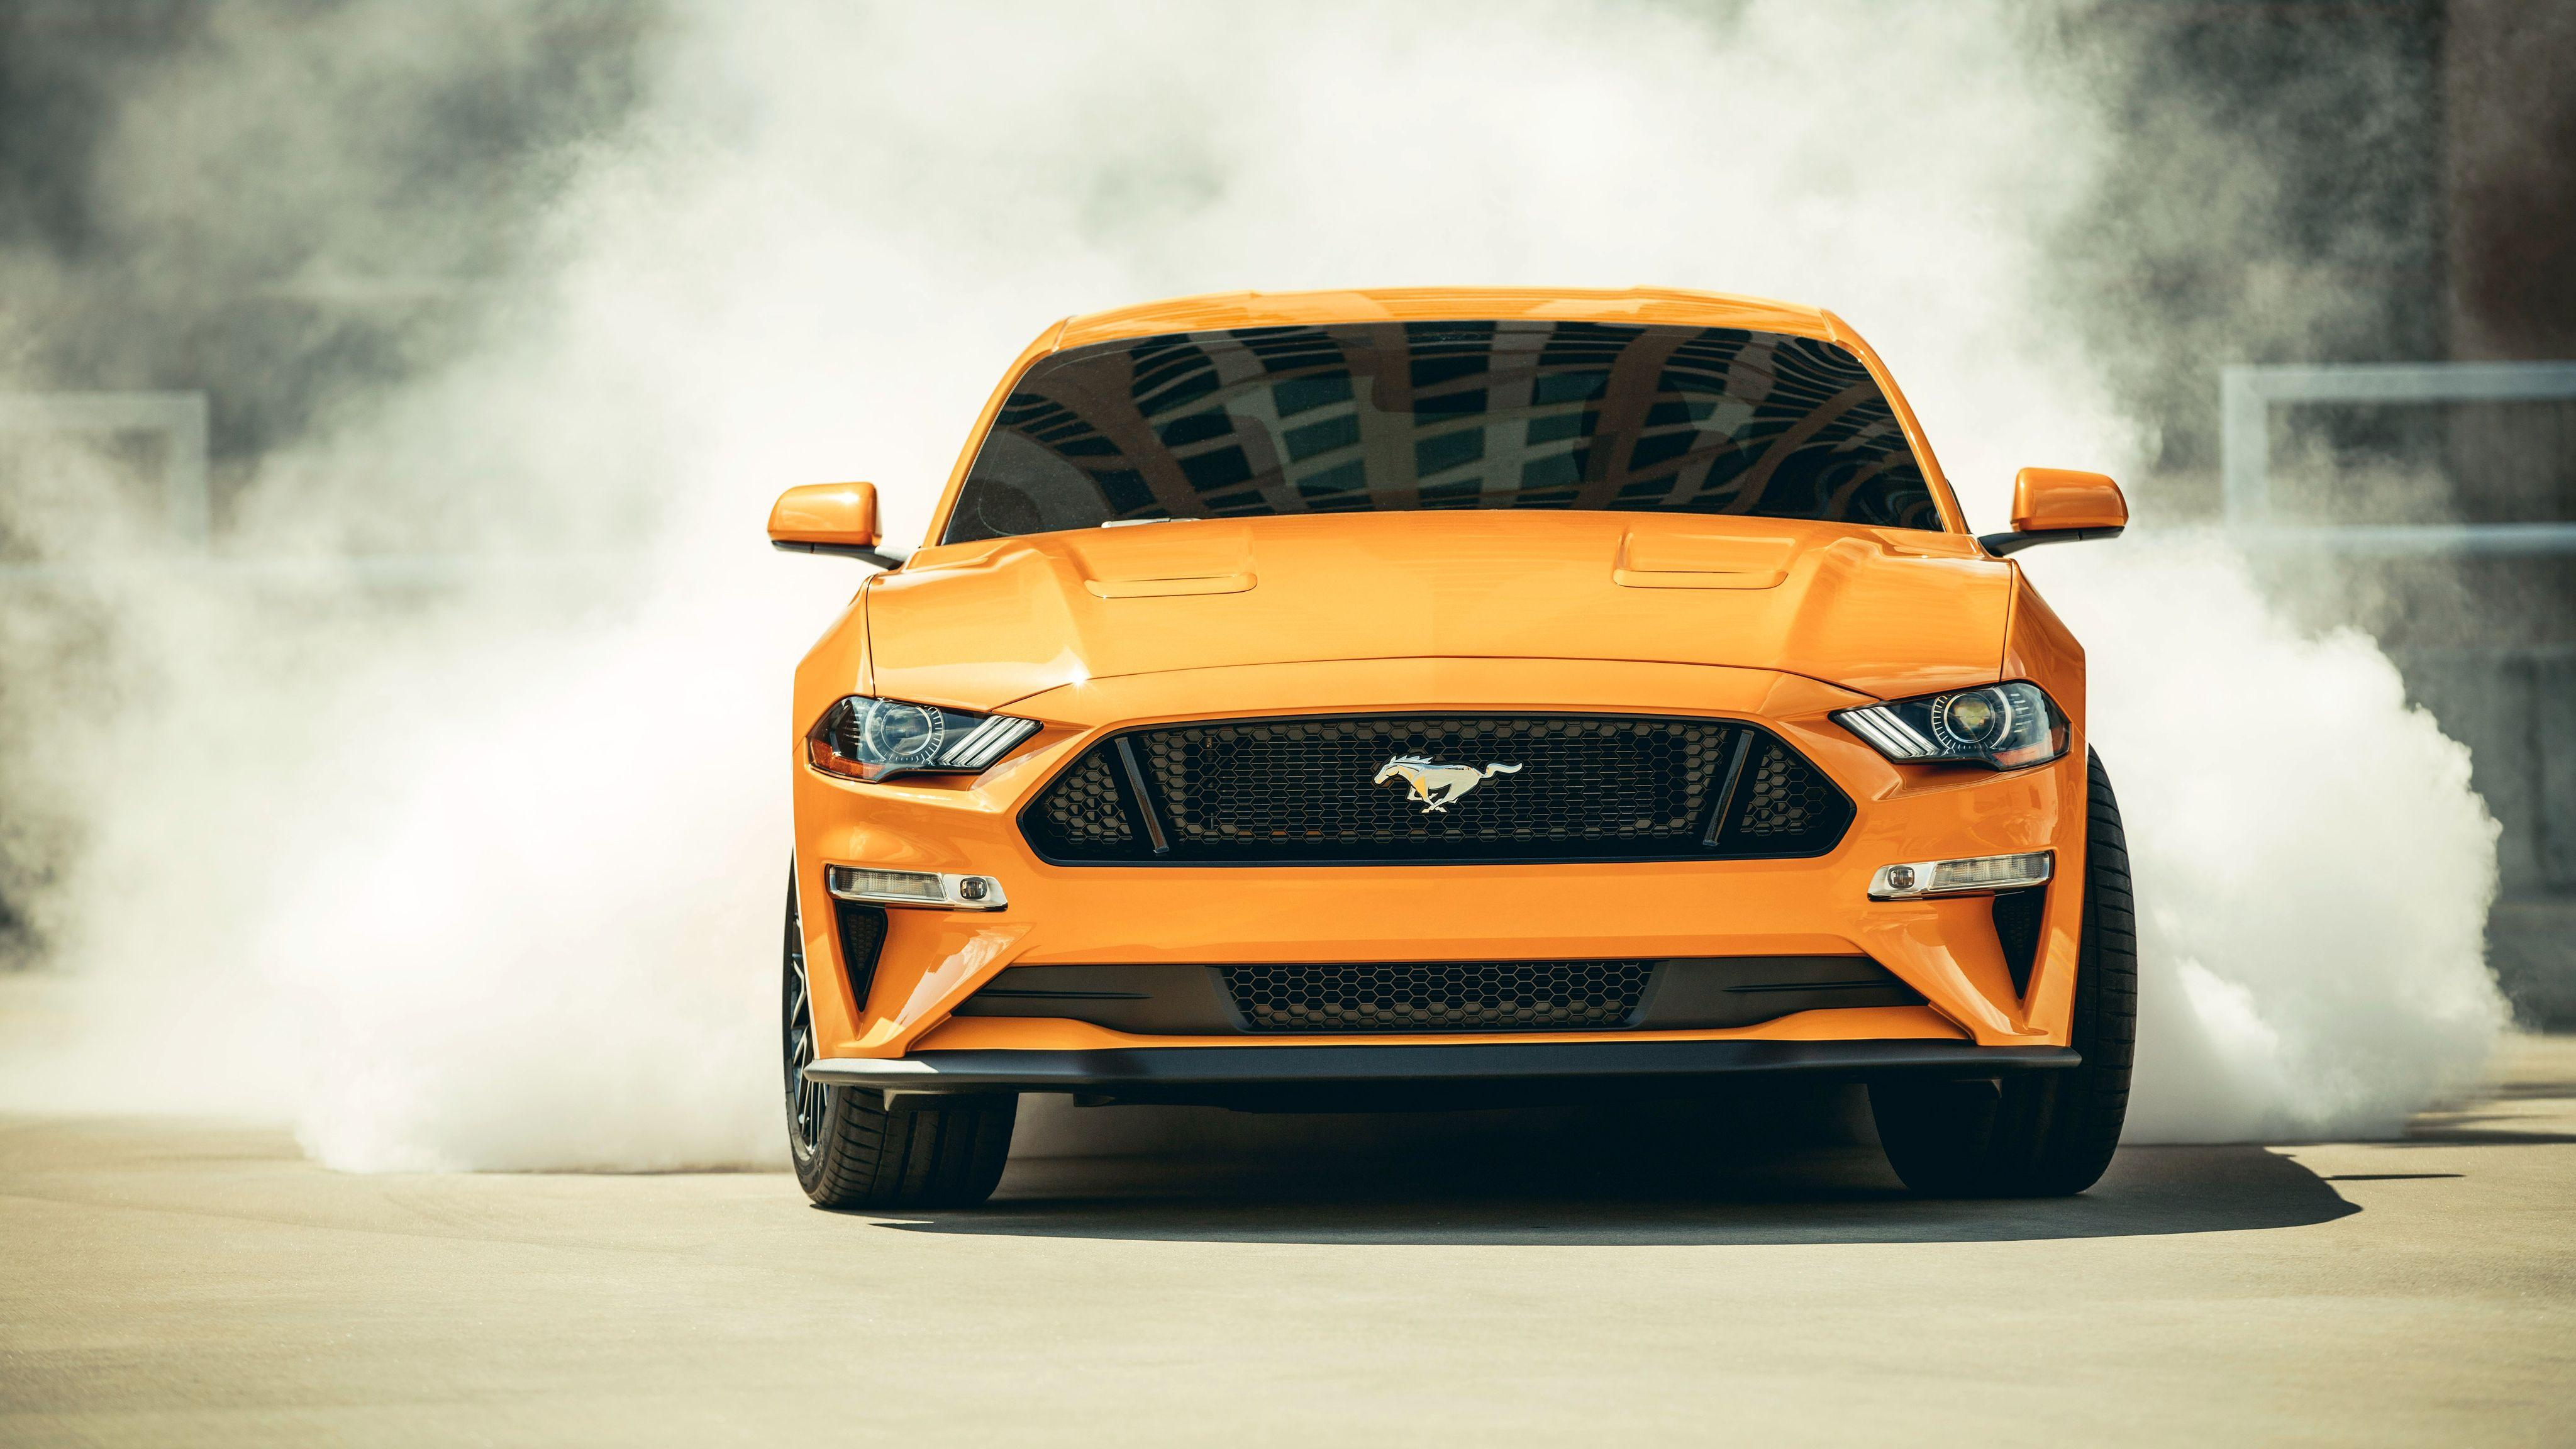 Wallpapers Ford Mustang, 2018, HD, 4K, Automotive / Cars,